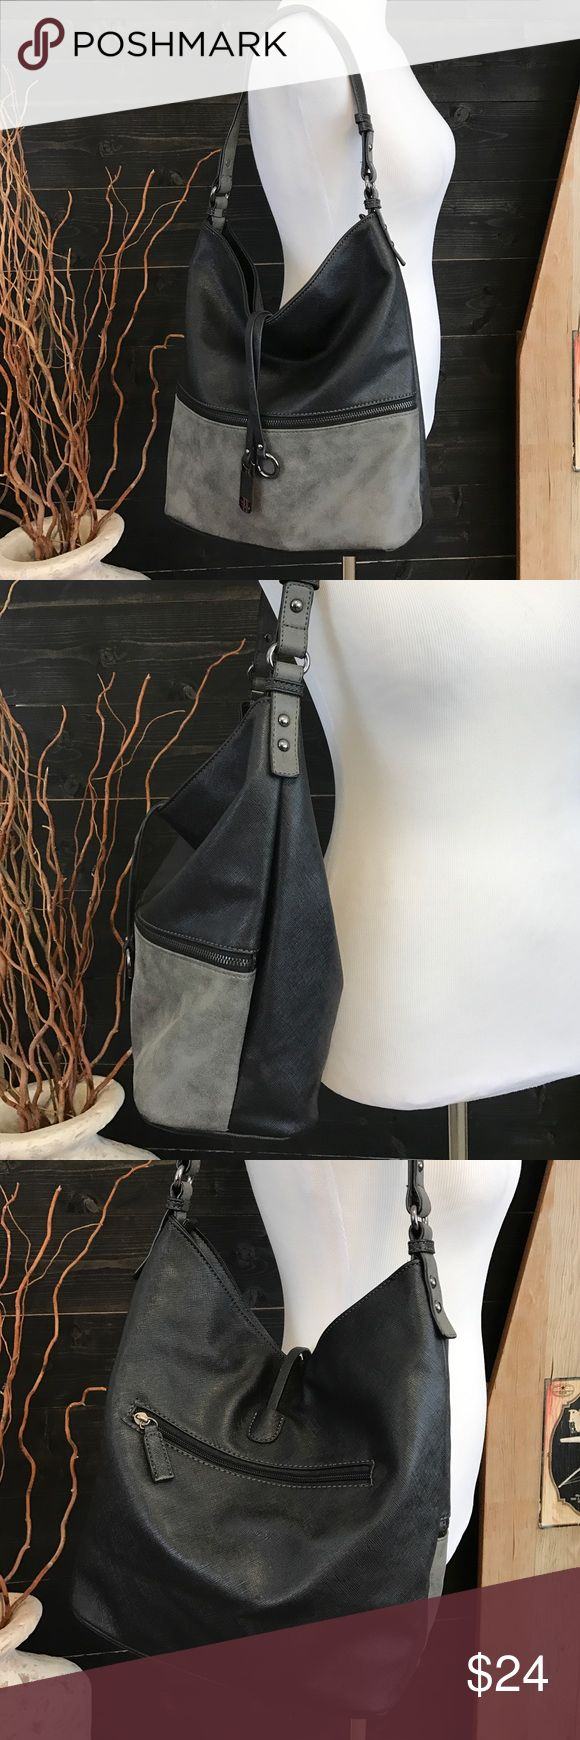 """David Jones 2 Tone Bag David Jones Handbag - Black and Gray - The only Sign of Use are a Couple Small Pen Marks Inside Otherwise This Purse is in Excellent Condition - Offers Welcomed - Measures 14""""W 12""""T and Bottom Measures 6"""" David Jones Bags"""